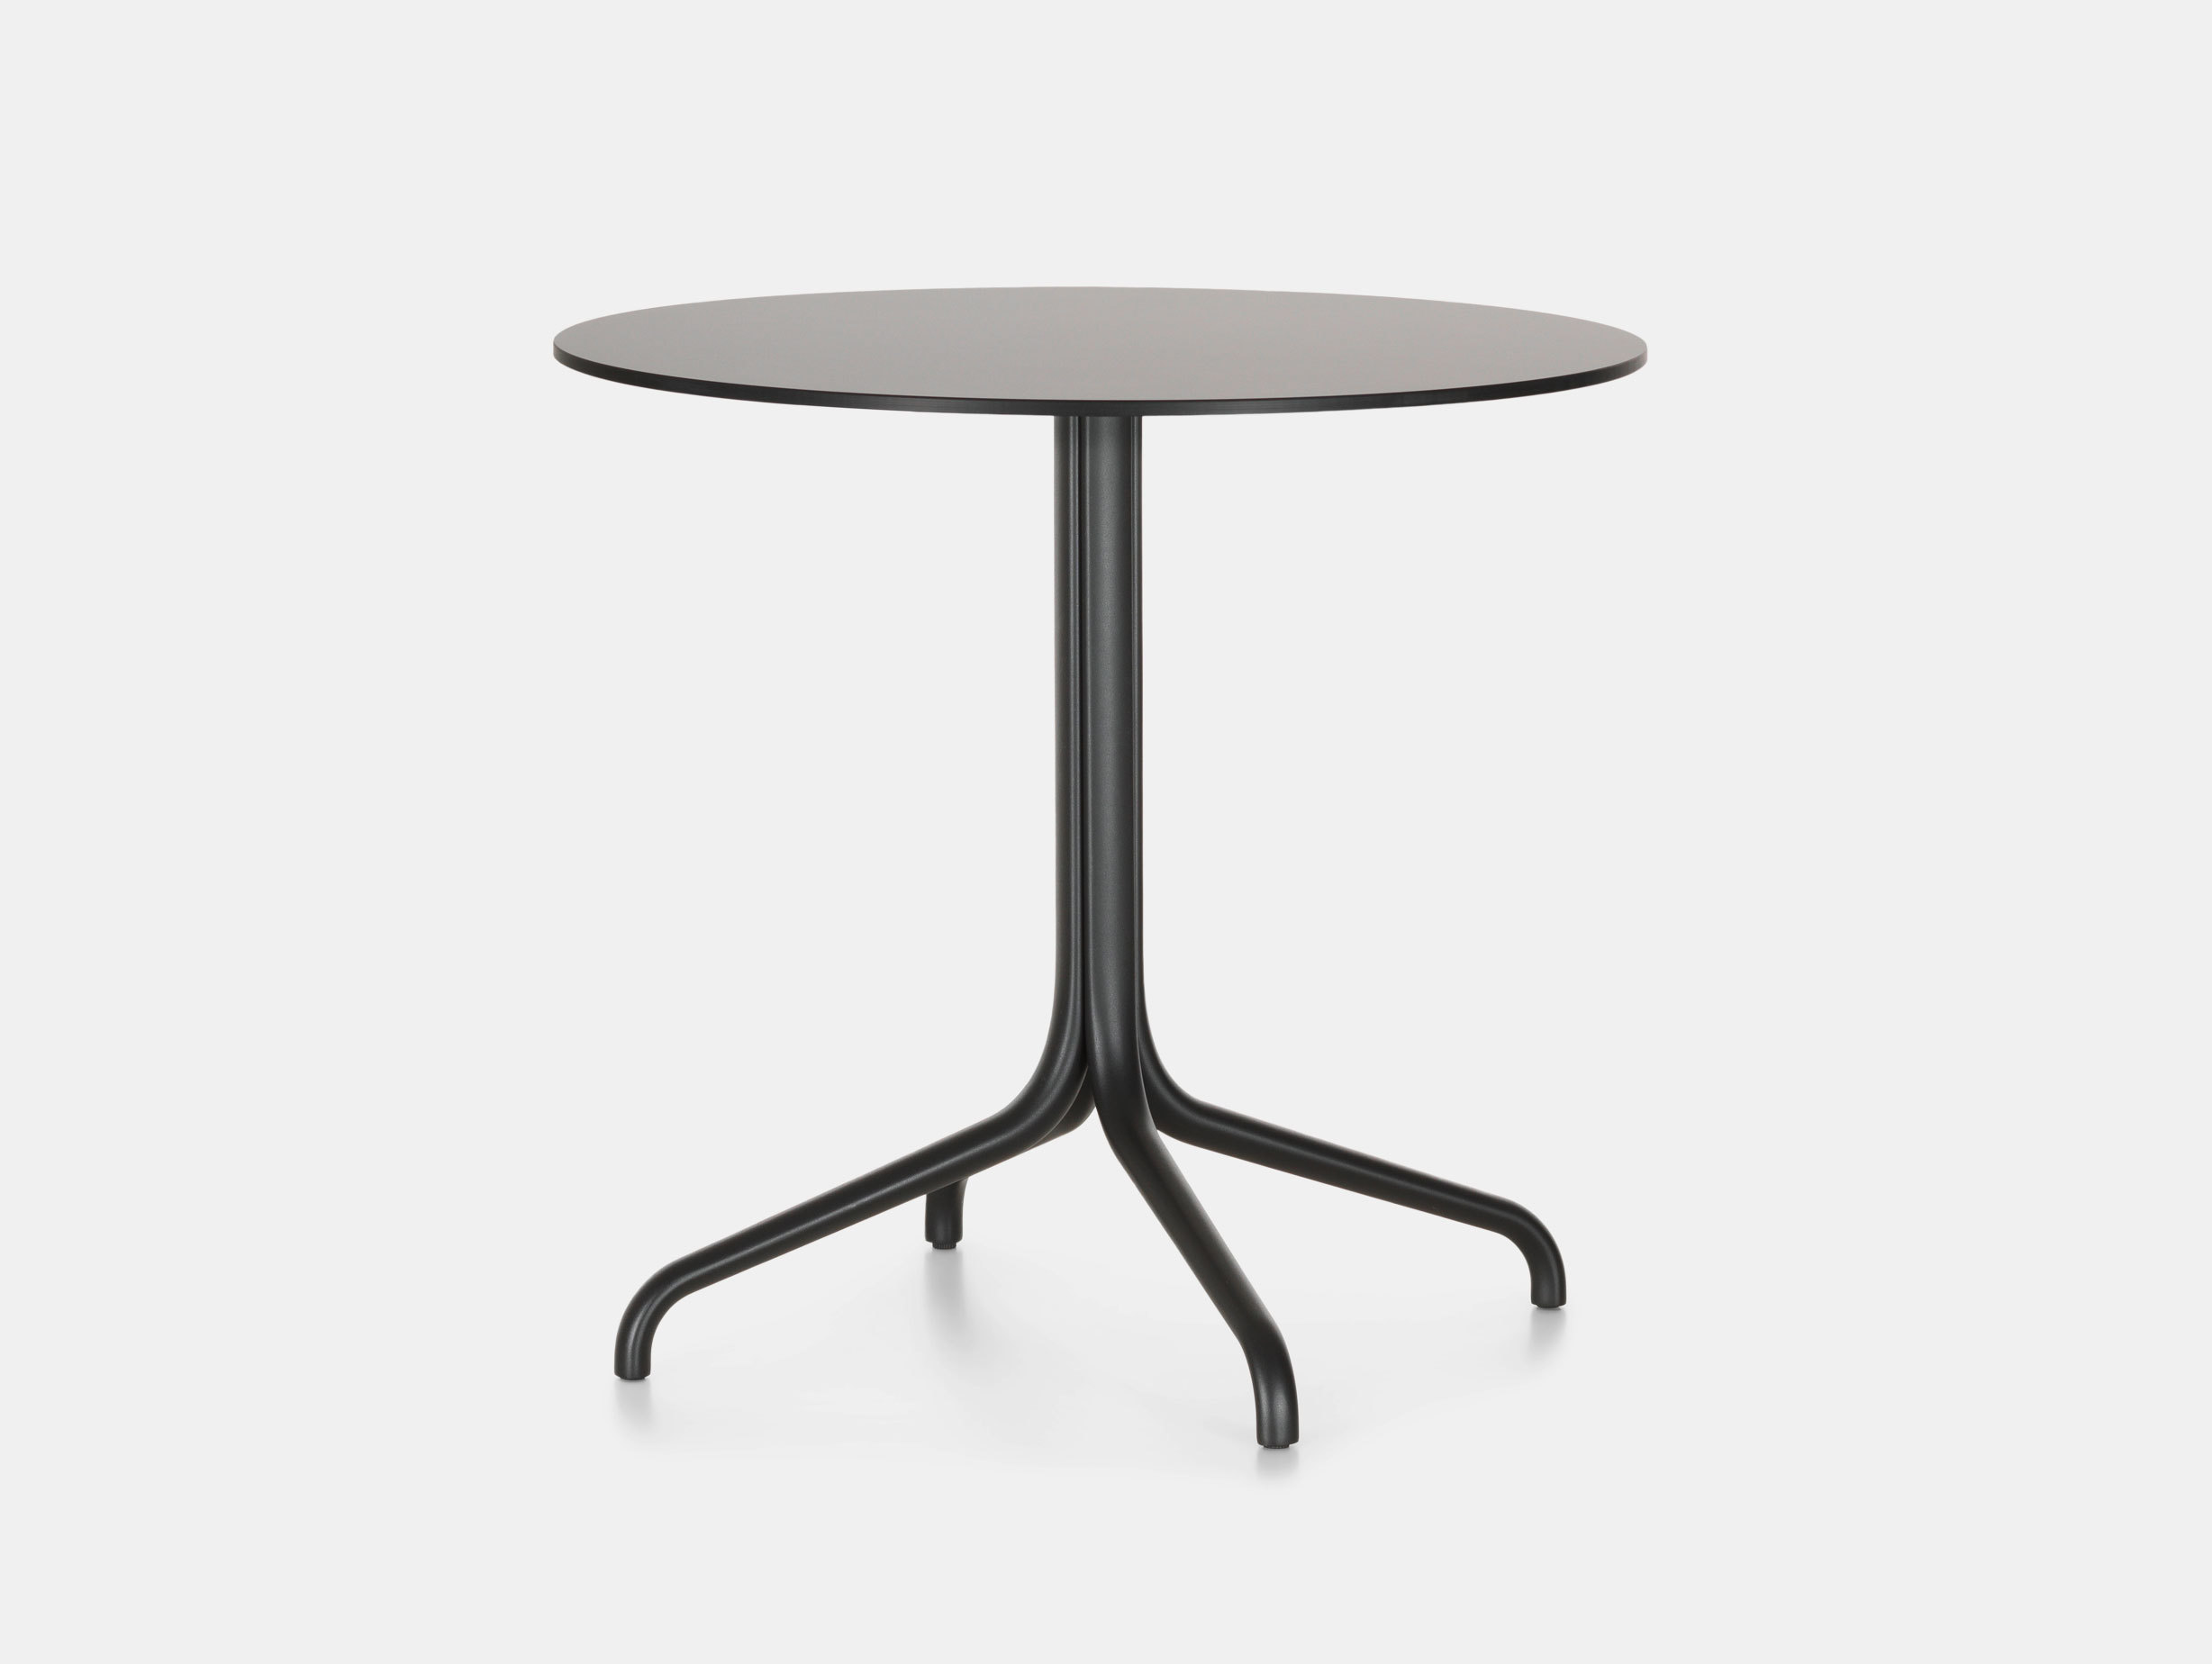 Vitra Belleville Outdoor Table Round Black Ronan Erwan Bouroullec